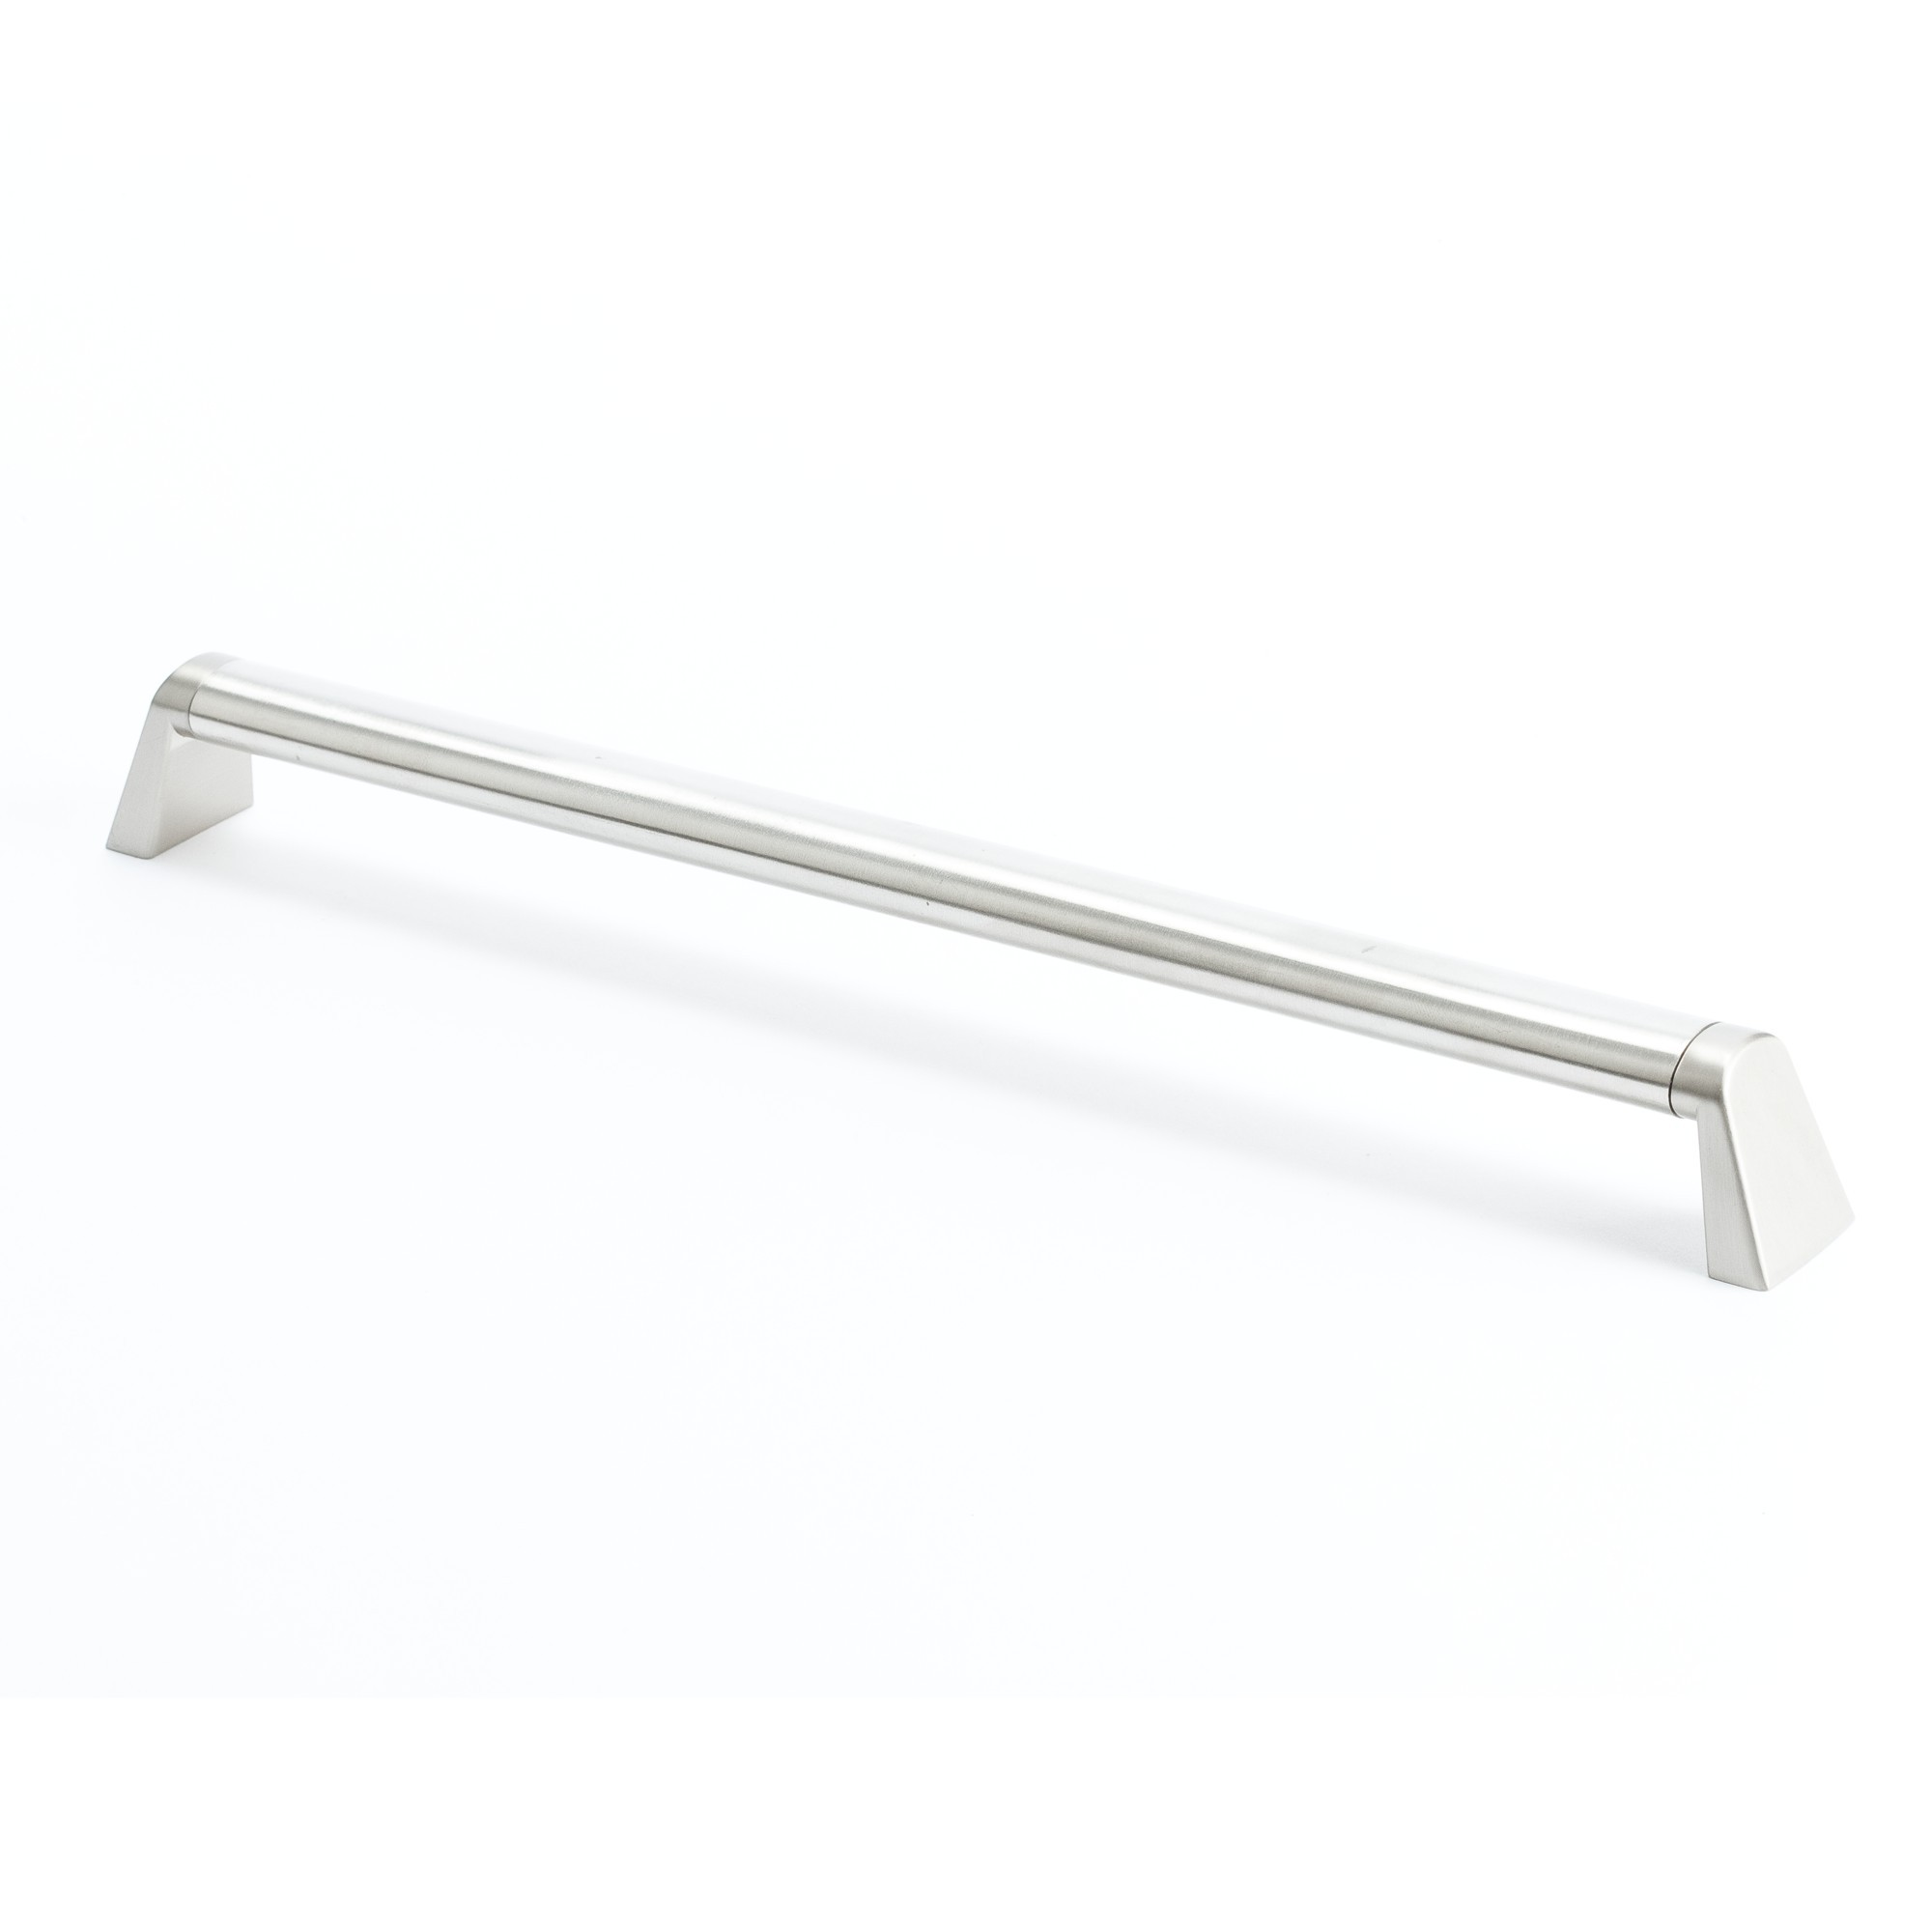 Bow Pull (Stainless Steel) - 320mm